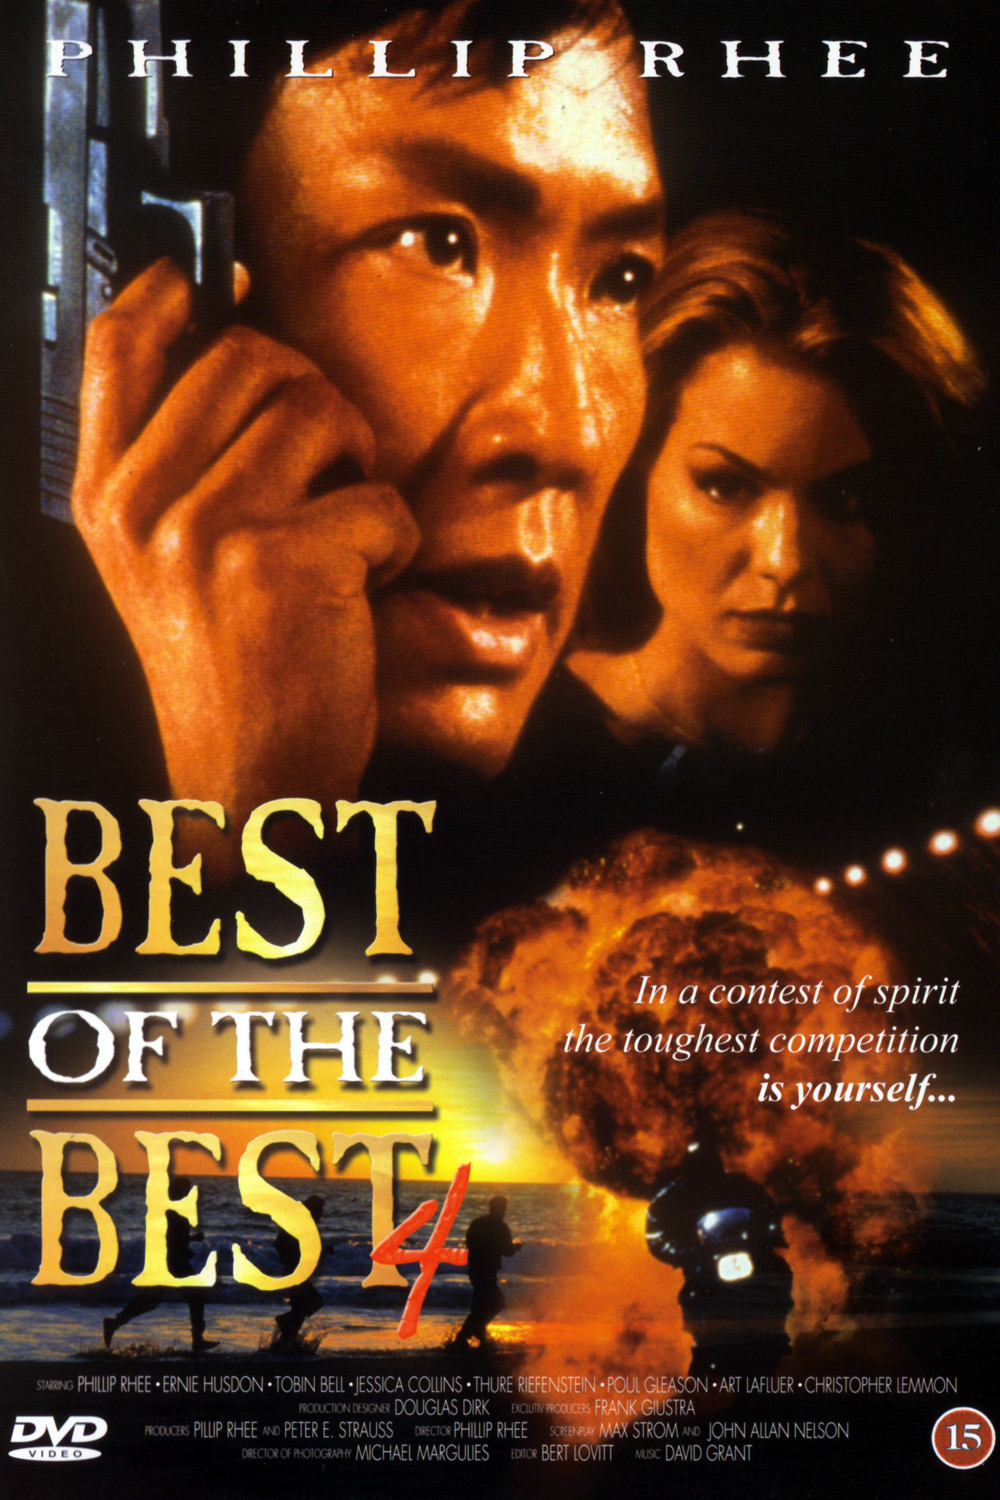 Watch Movie Best of the Best 4 Without Warning